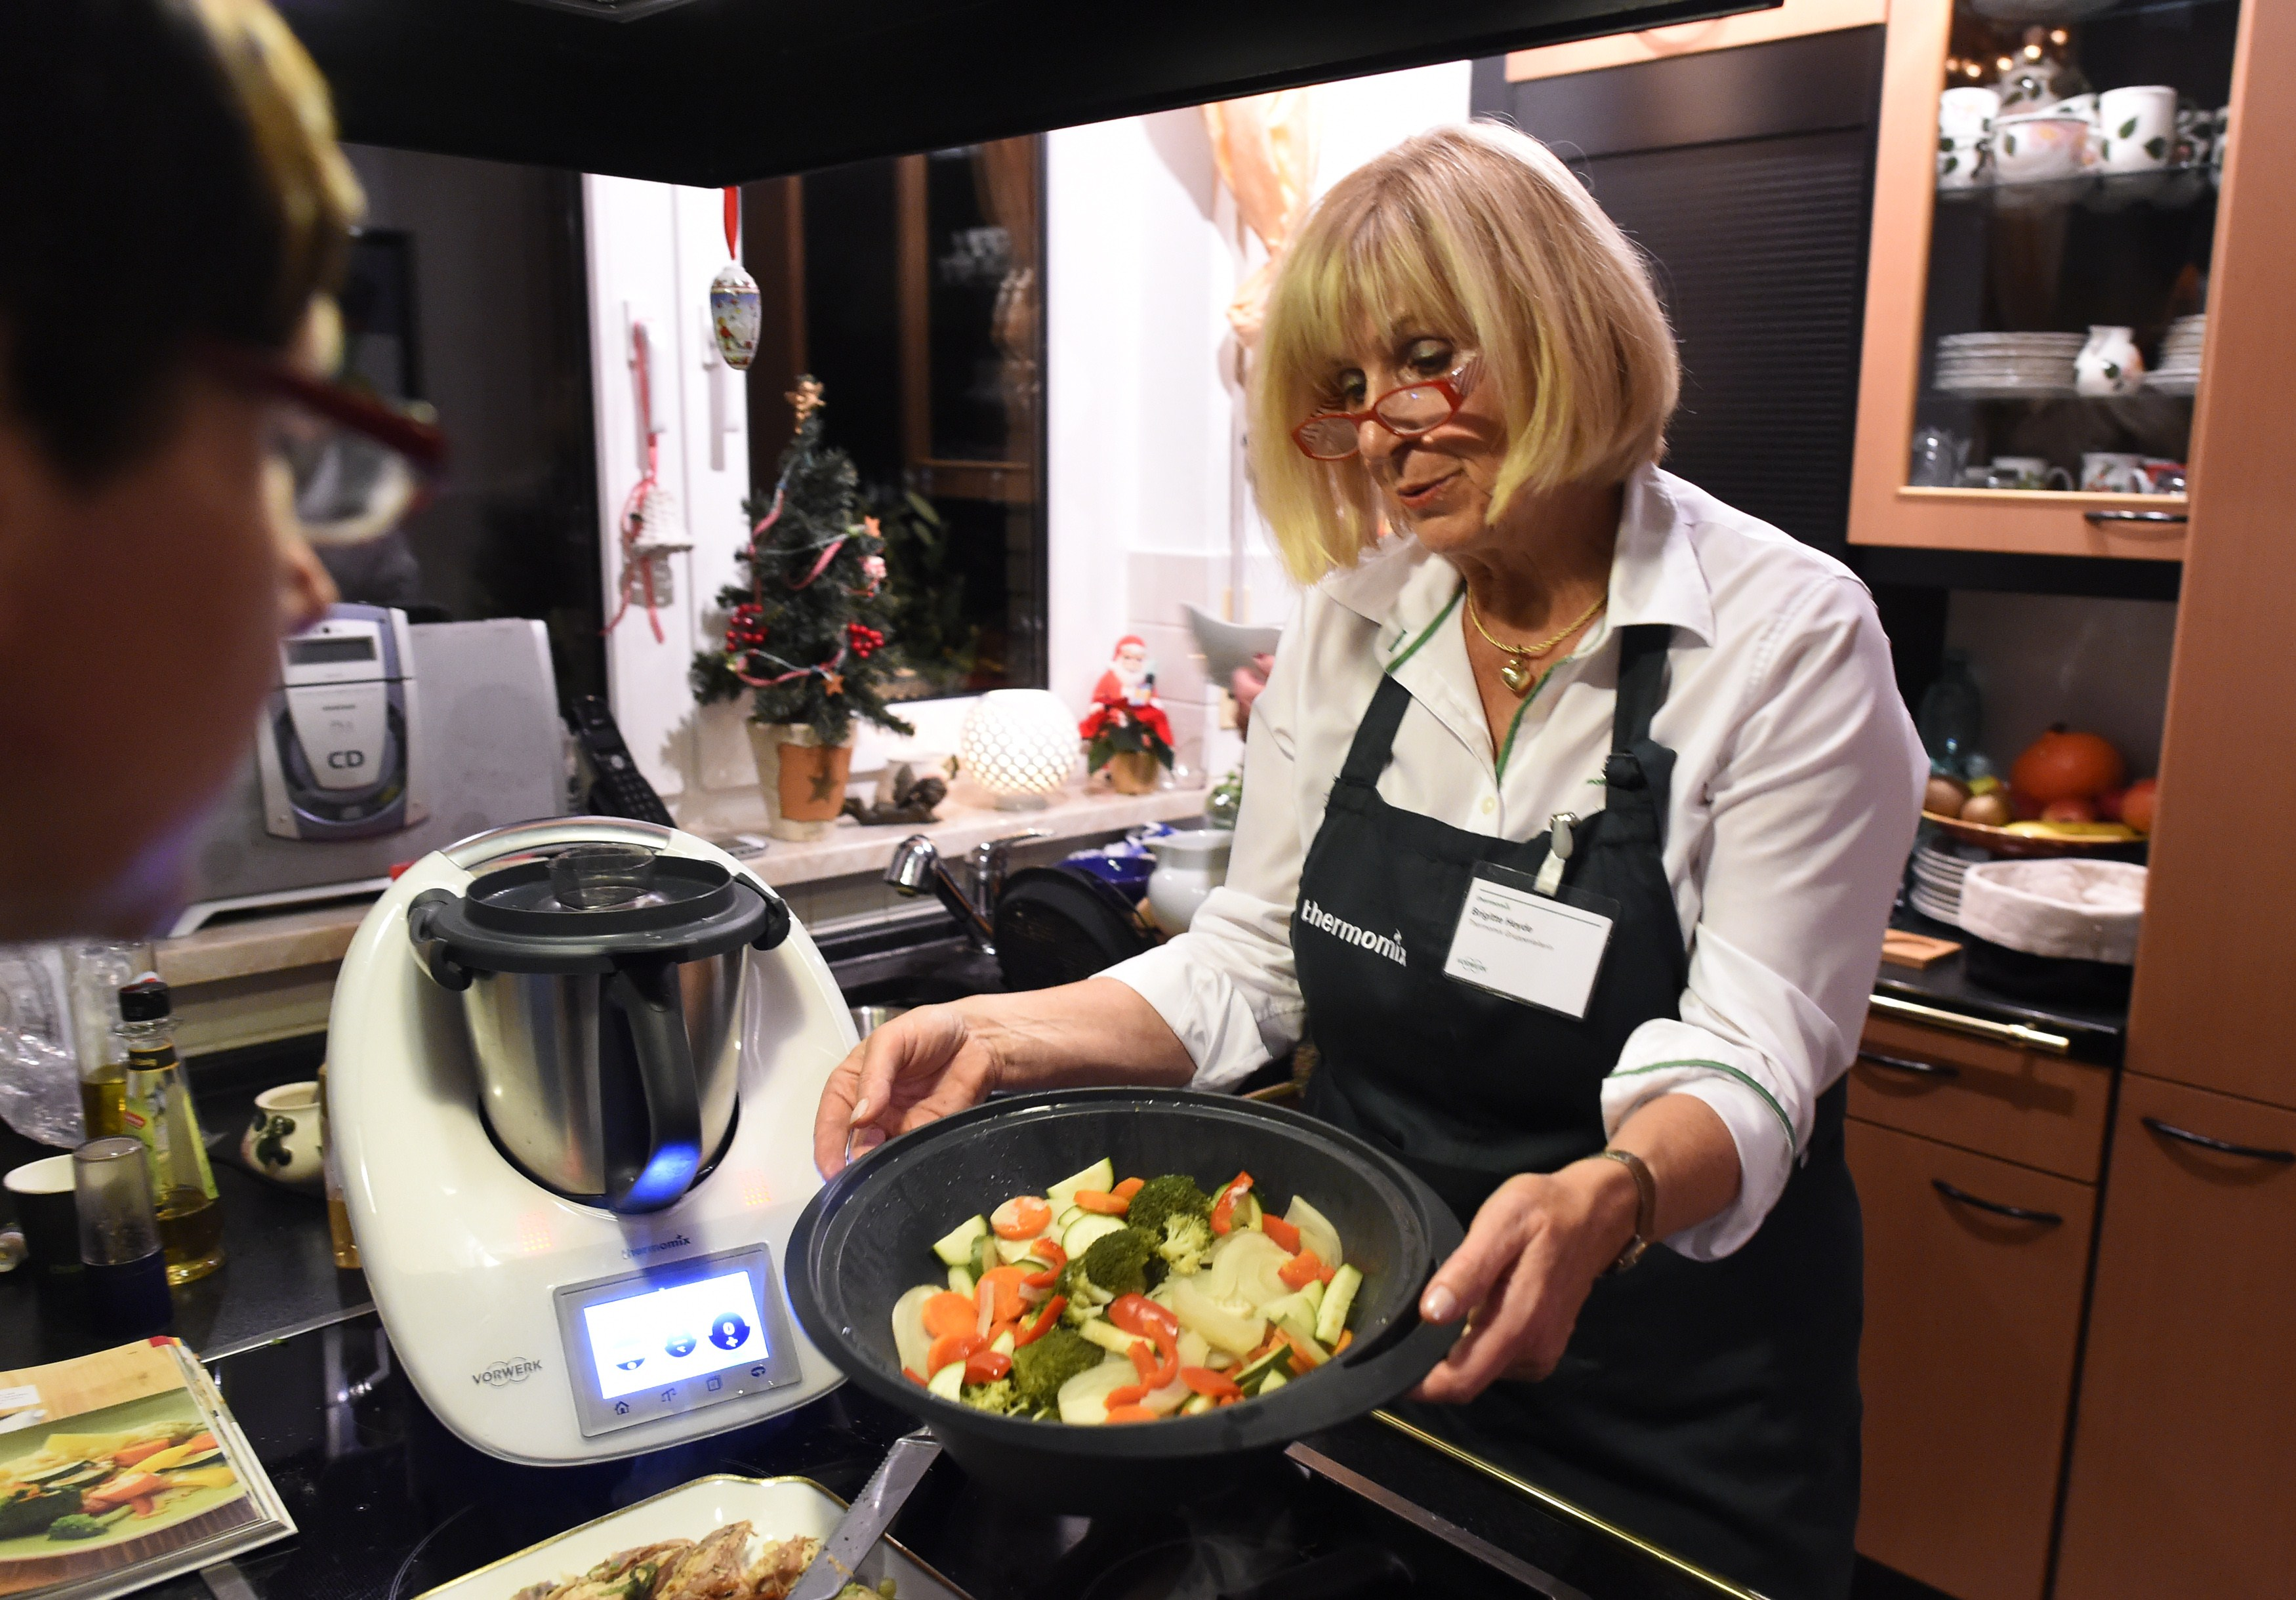 Thermomix, Vorwerk's $1,450 kitchen appliance, is coming to